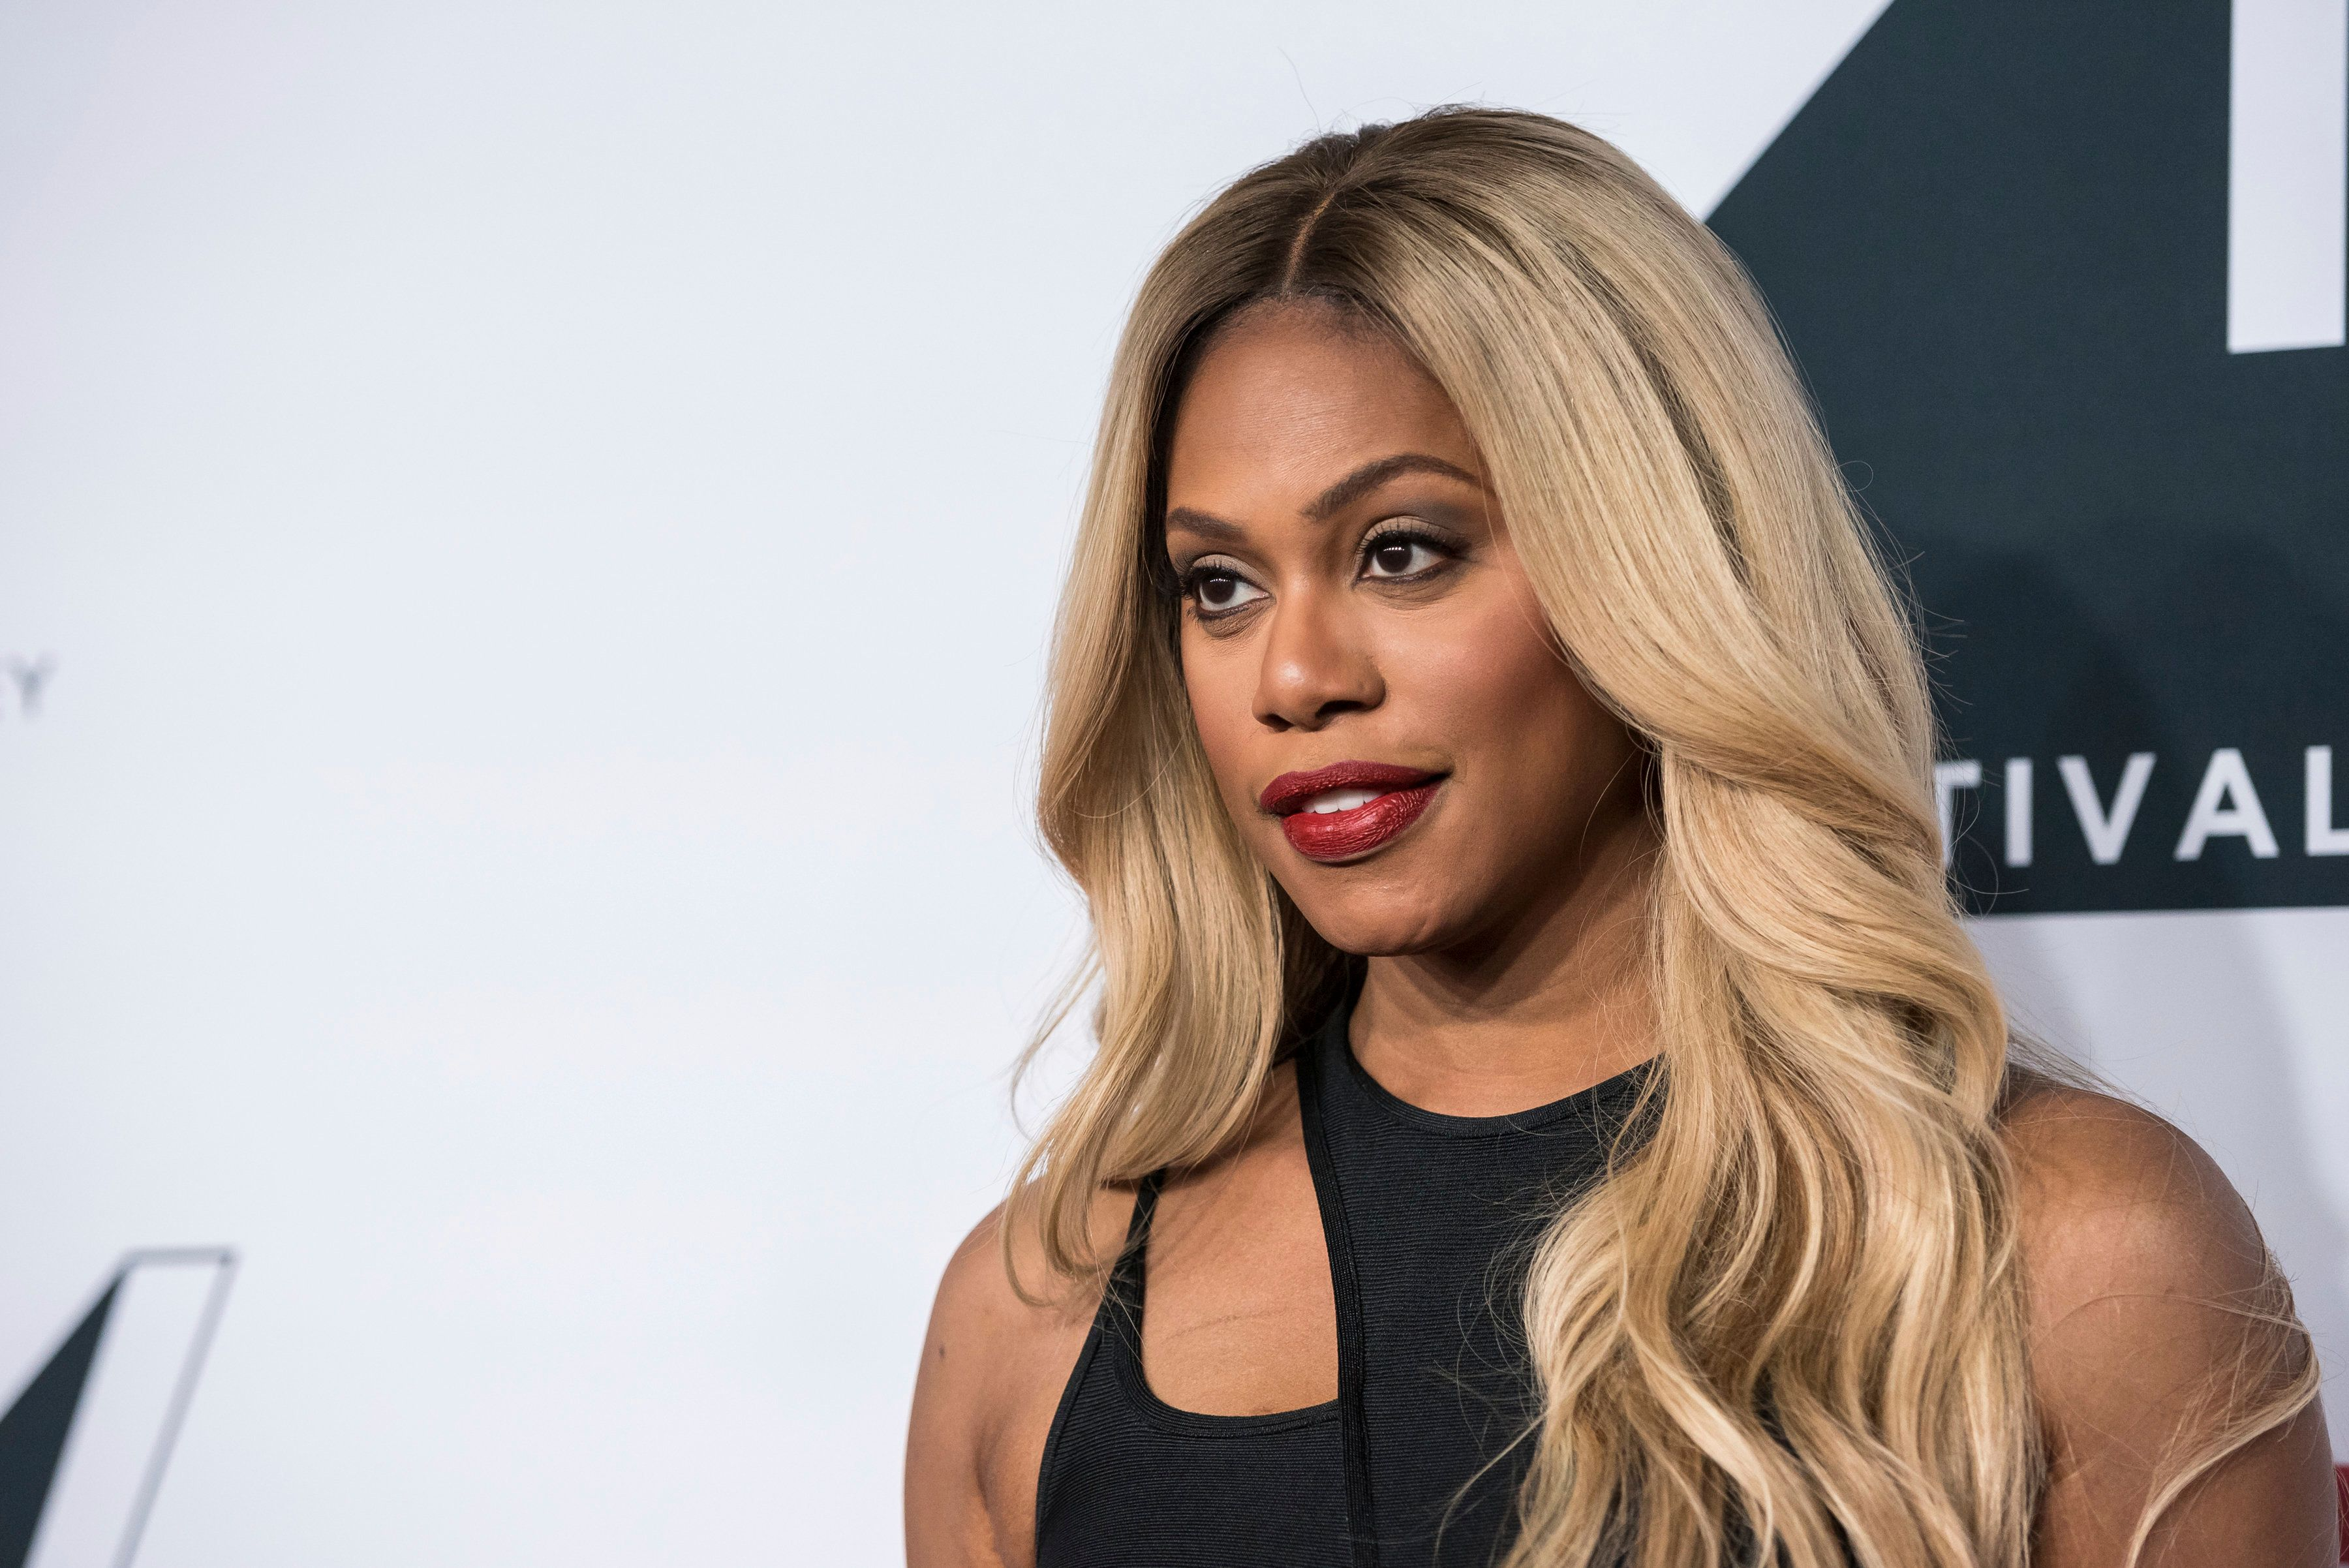 Laverne Cox has opened up recently about some of the survivor's guilt she experiences as a black trans woman, telling The Cut